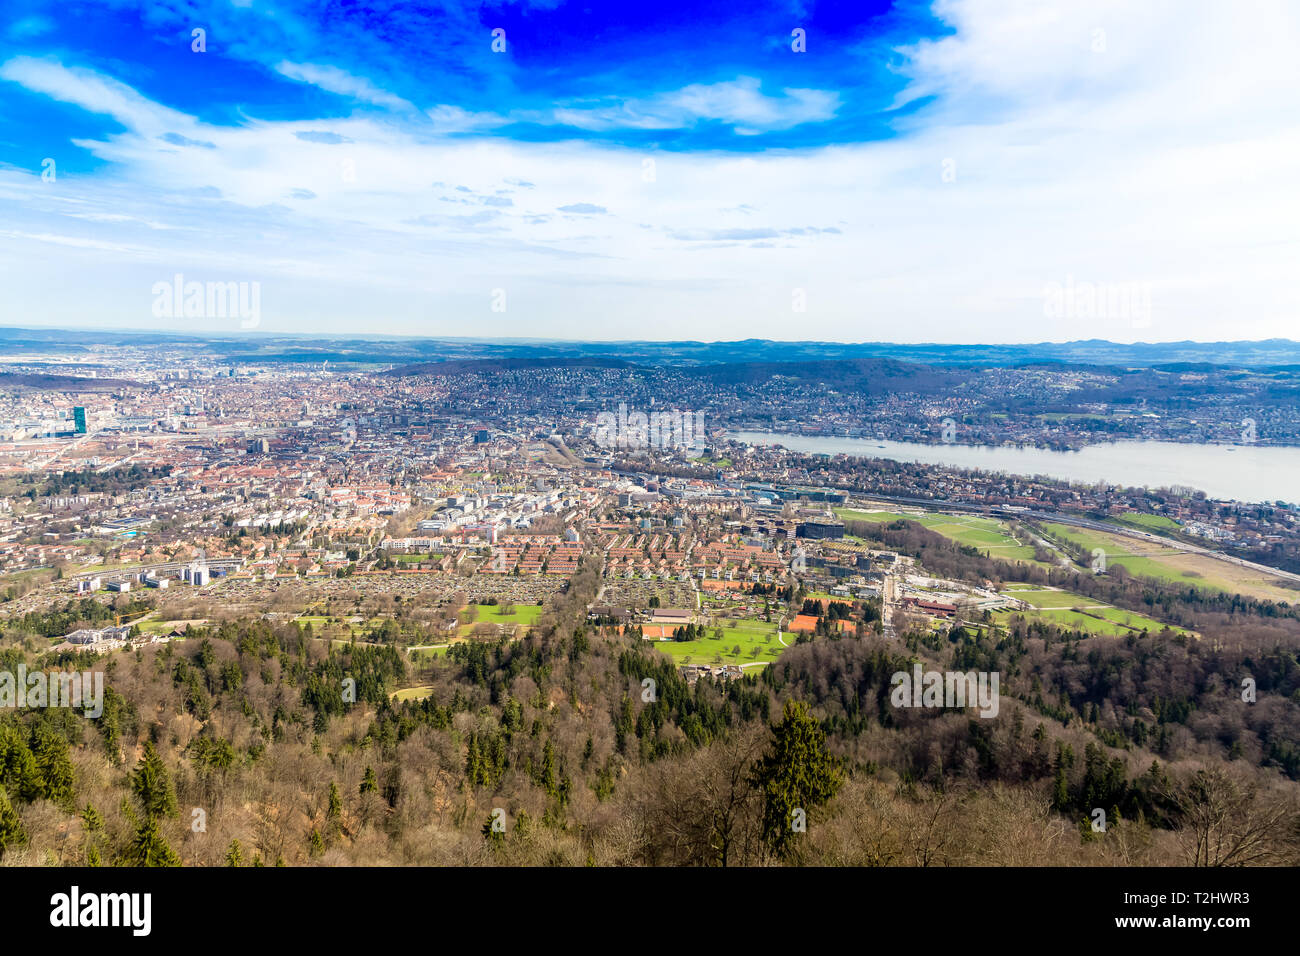 Panorama of Zurich city from the top of Uetliberg mountain Stock Photo